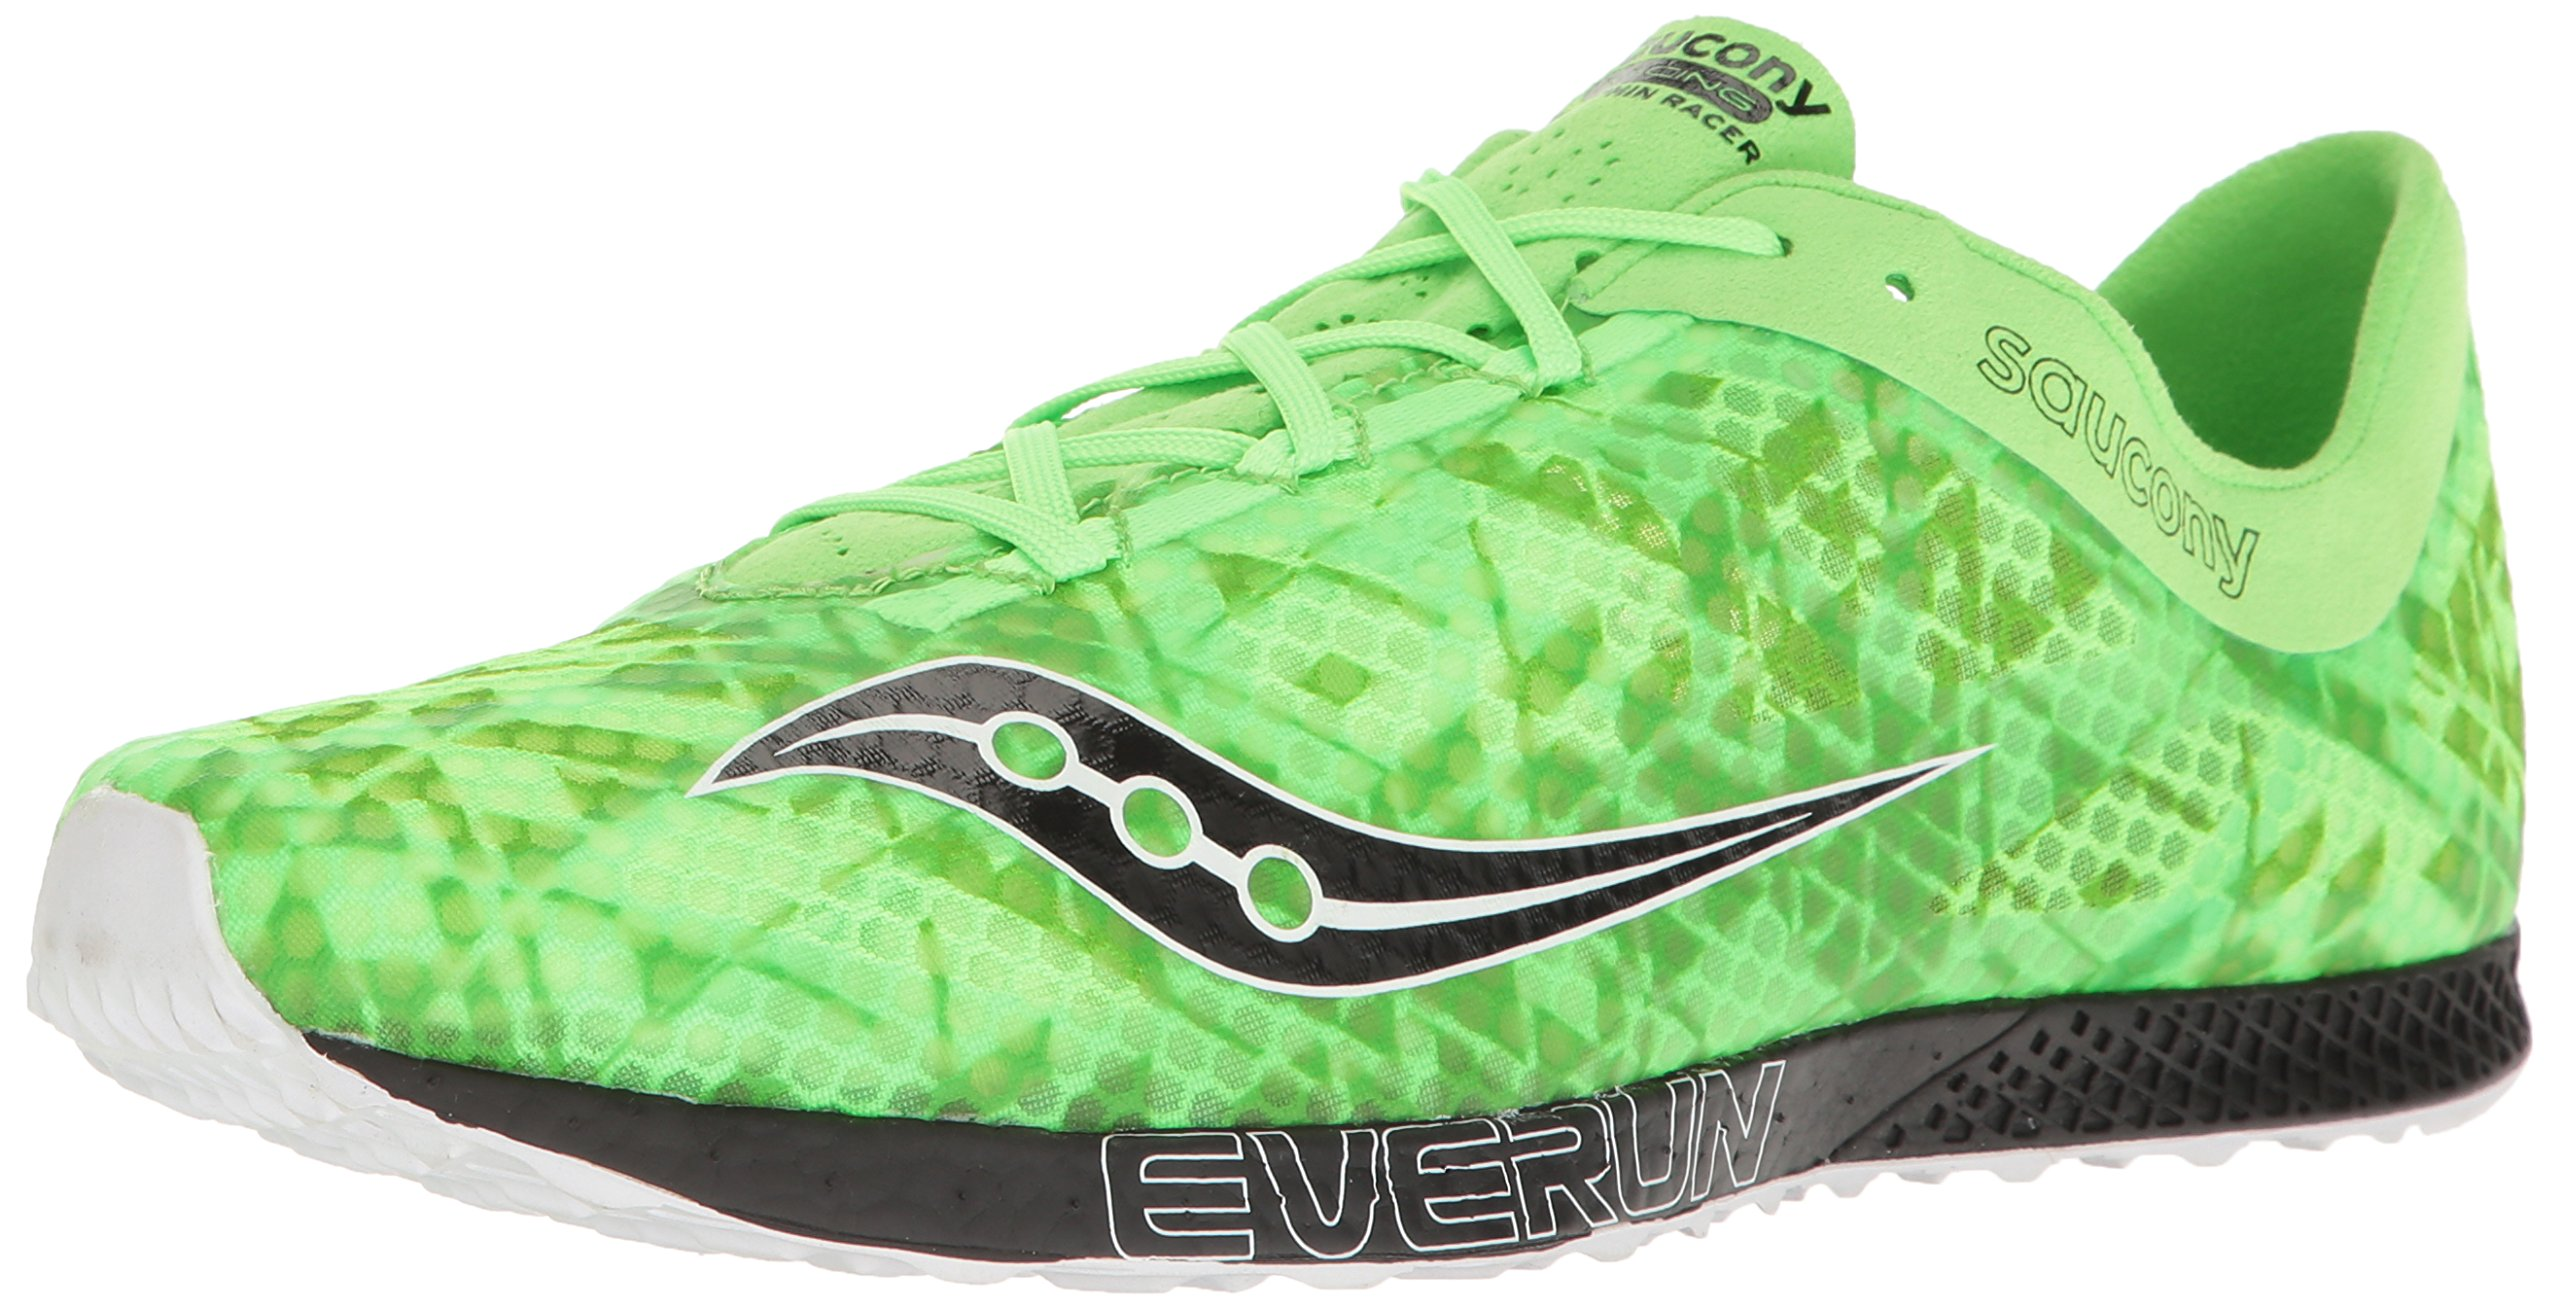 Saucony Men's Endorphin Racer 2 Track Shoe, Slime/Black, 7.5 M US by Saucony